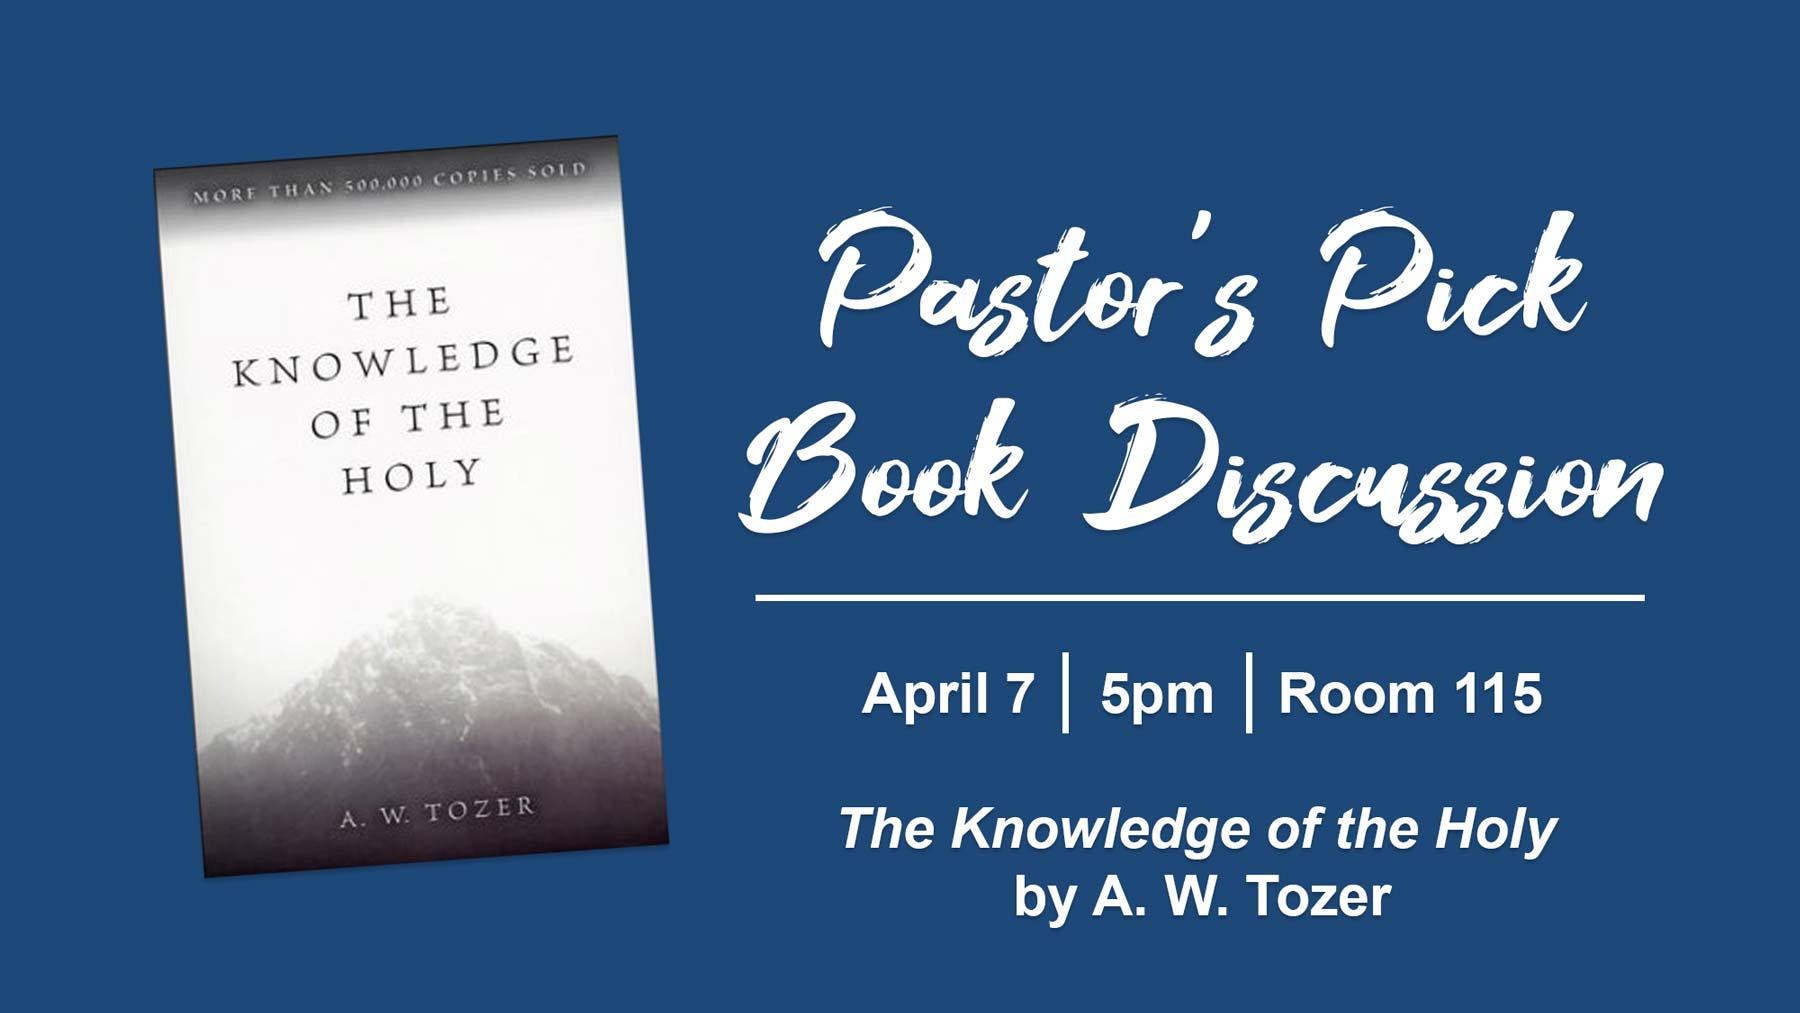 Christian Fellowship Church's Pastor's Pick Book Discussion on The Knowledge of the Holy by A. W Tozer